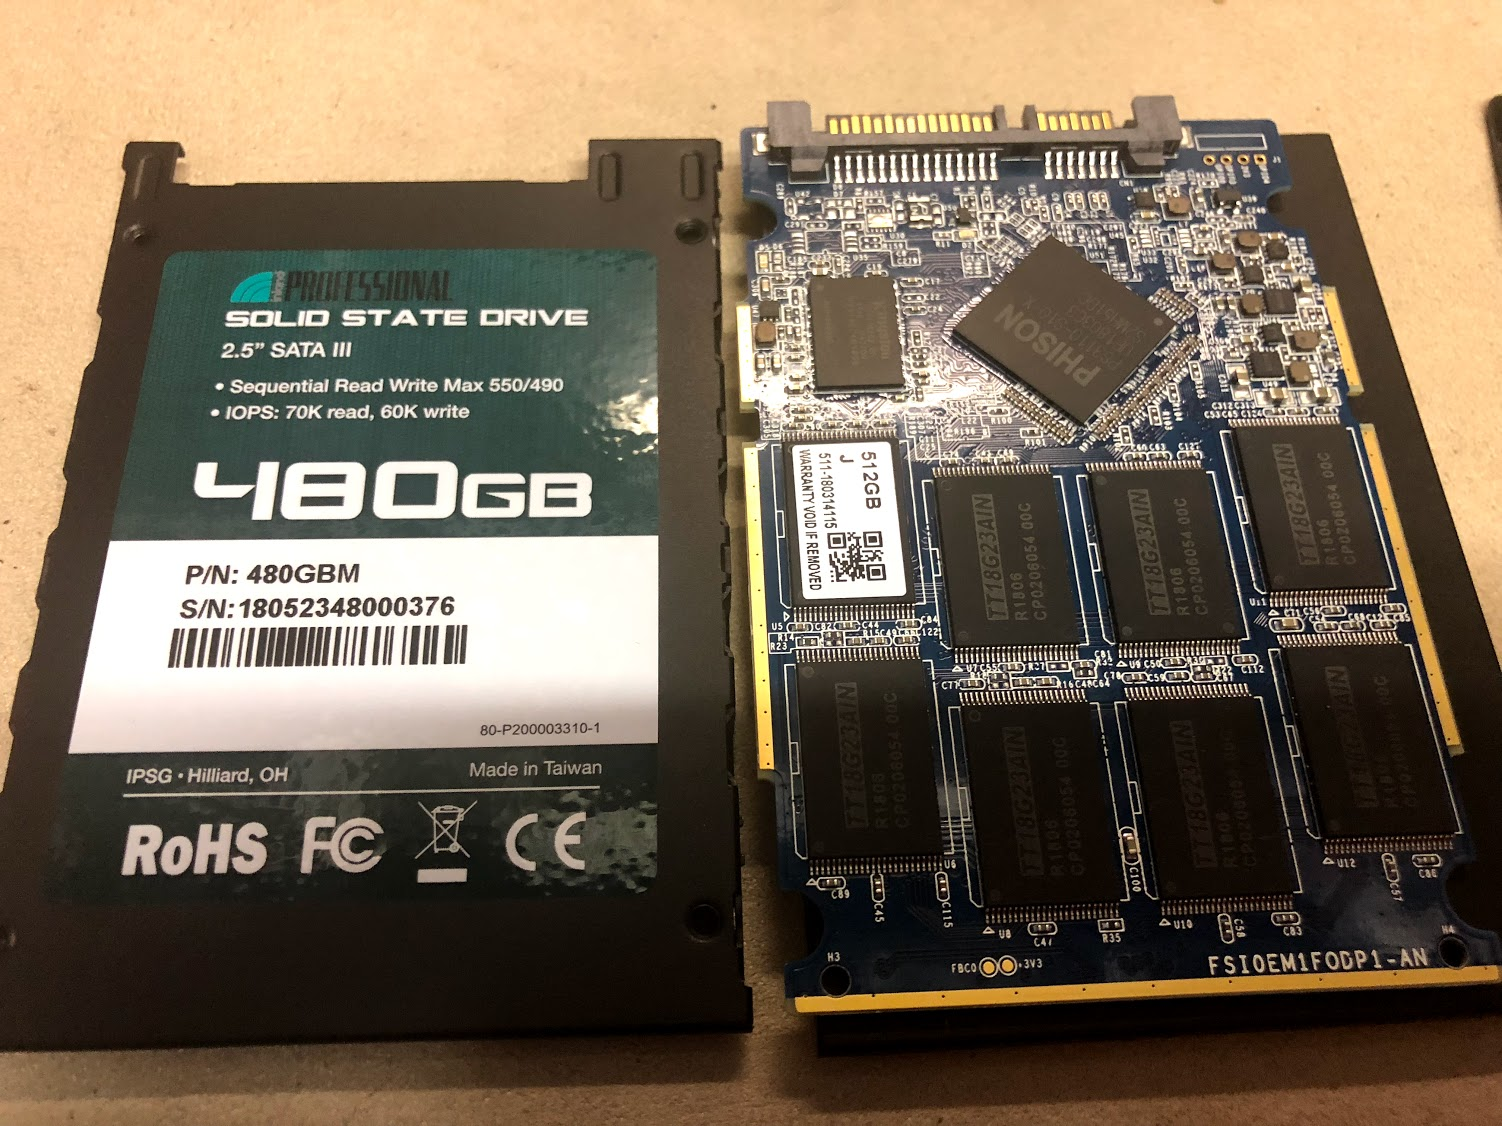 Inland Professional 480gb SSD - Here's what's inside | [H]ard|Forum